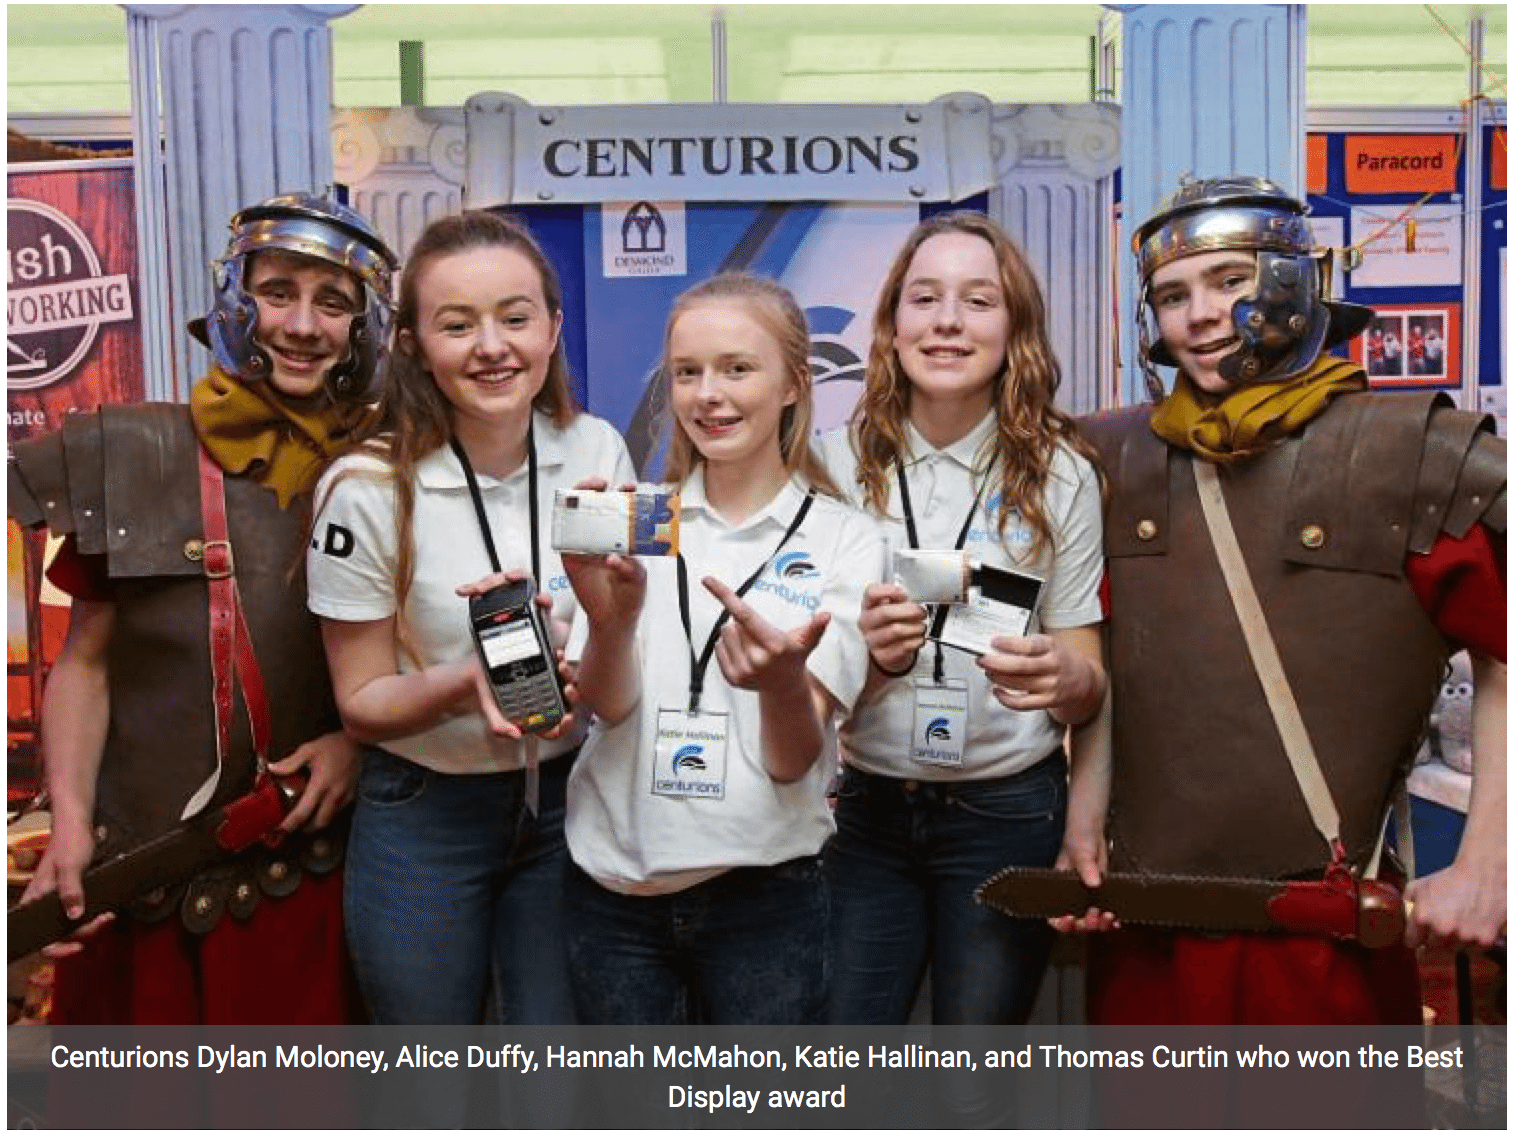 Desmond College students in the Limerick Leader for their win at the National Student Enterprise Awards 2016 (article by Norma Prenderville)